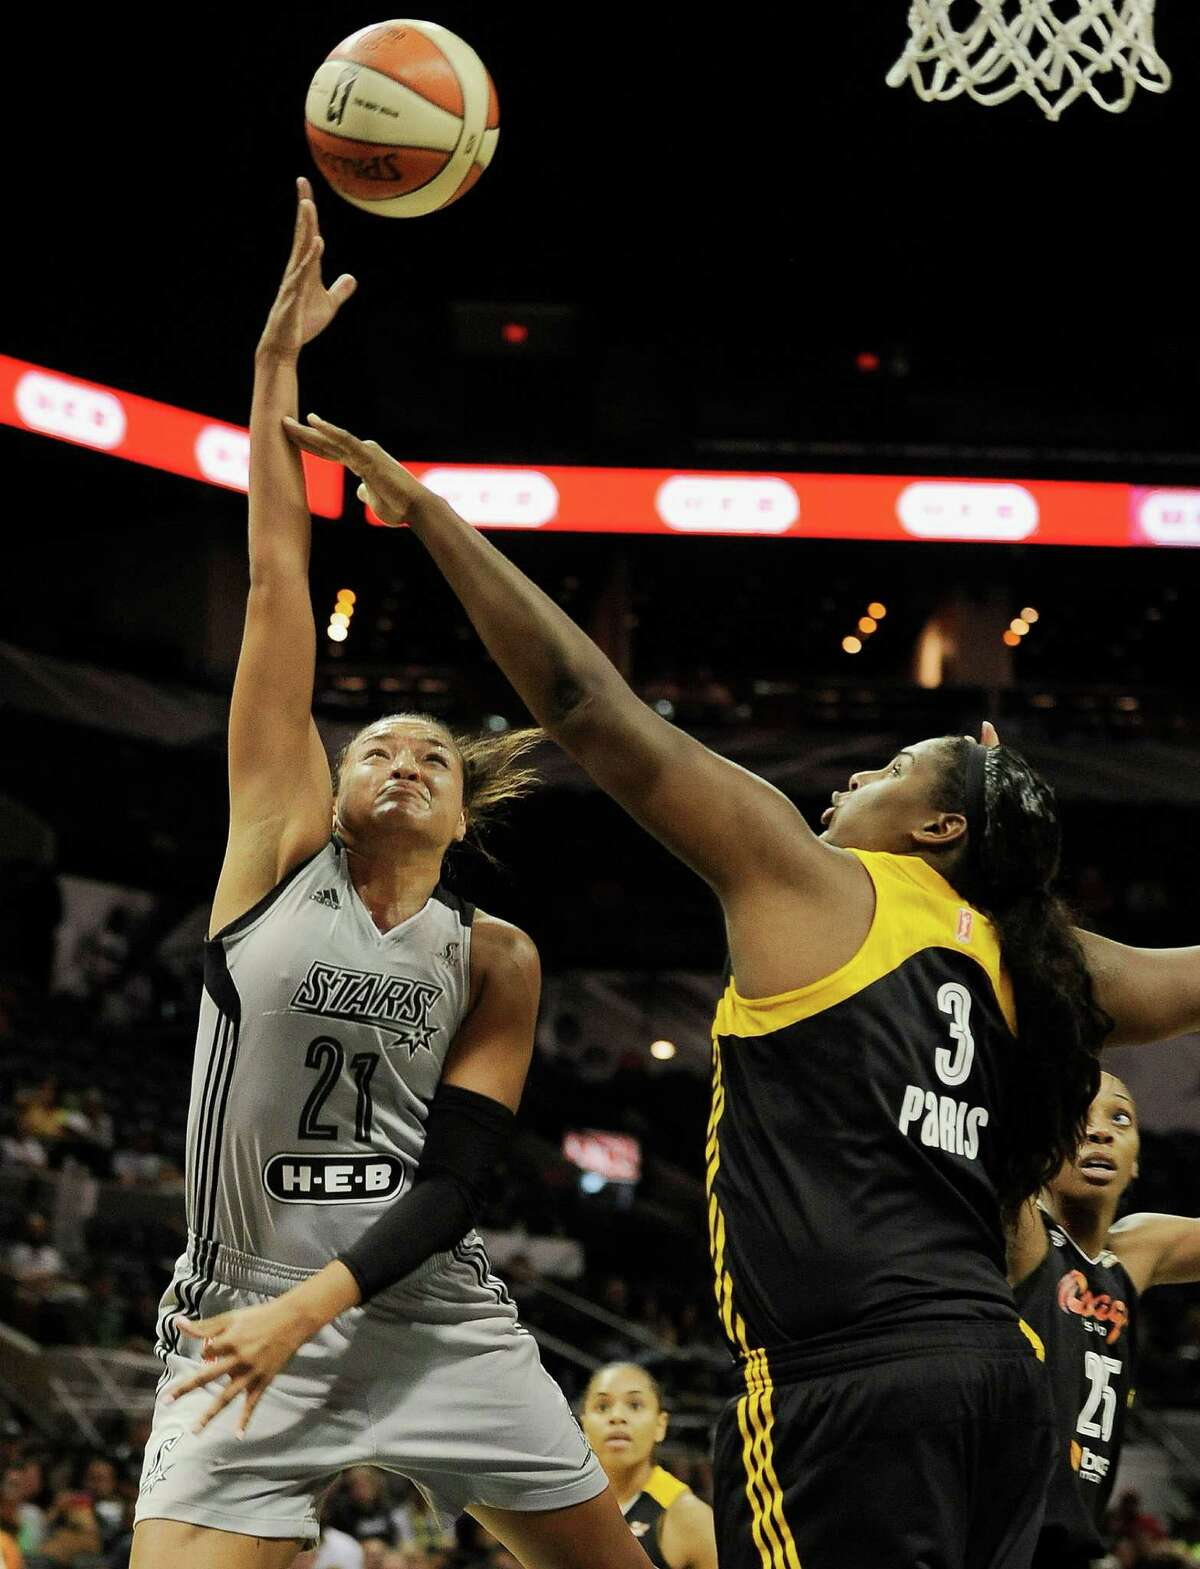 San Antonio Stars' Kayla McBride, left, shoots against Tulsa Shock's Courtney Paris during the first half of a WNBA basketball game, Tuesday, July 22, 2014, in San Antonio. (Darren Abate/For the Express-News)